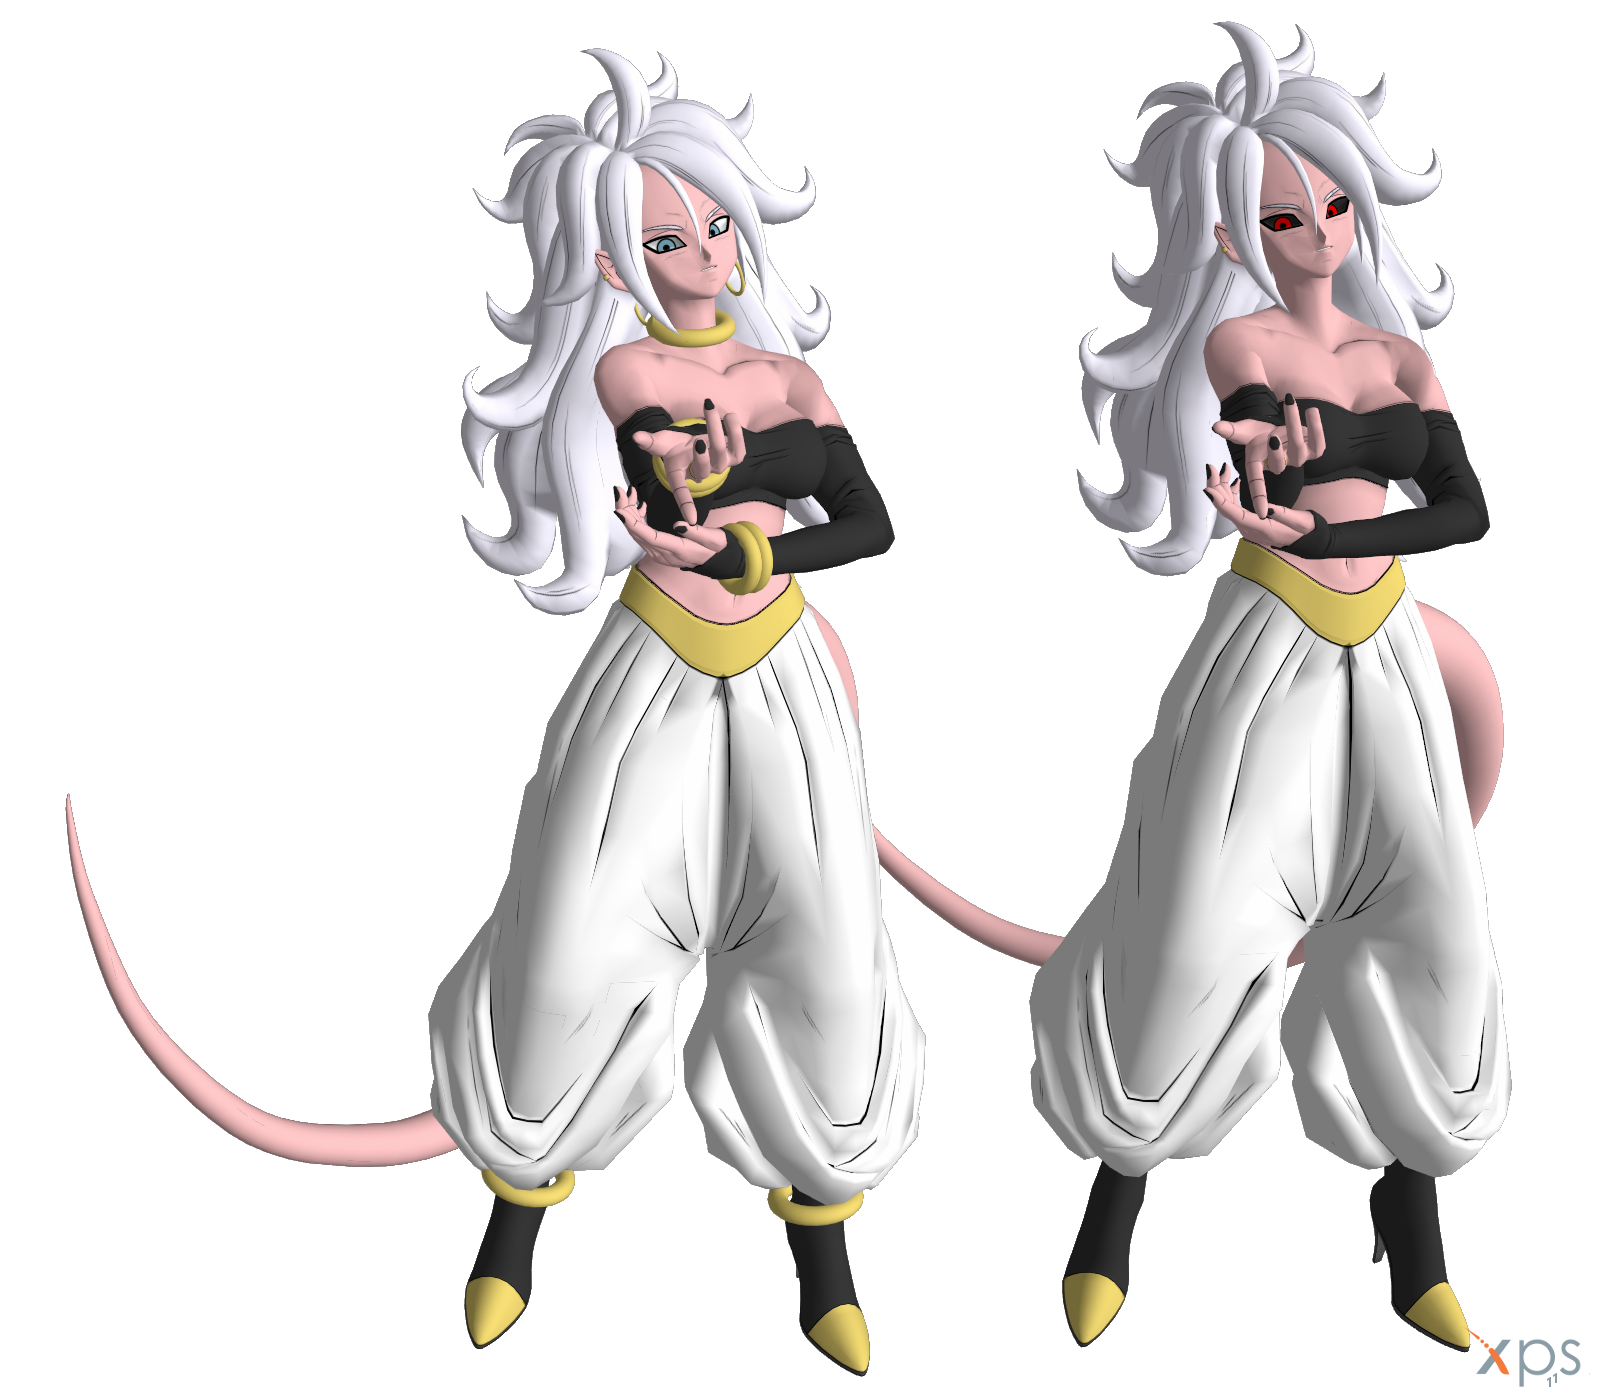 Dragon Ball Android 21: Android 21 (True Form) By LorisCangini On DeviantArt